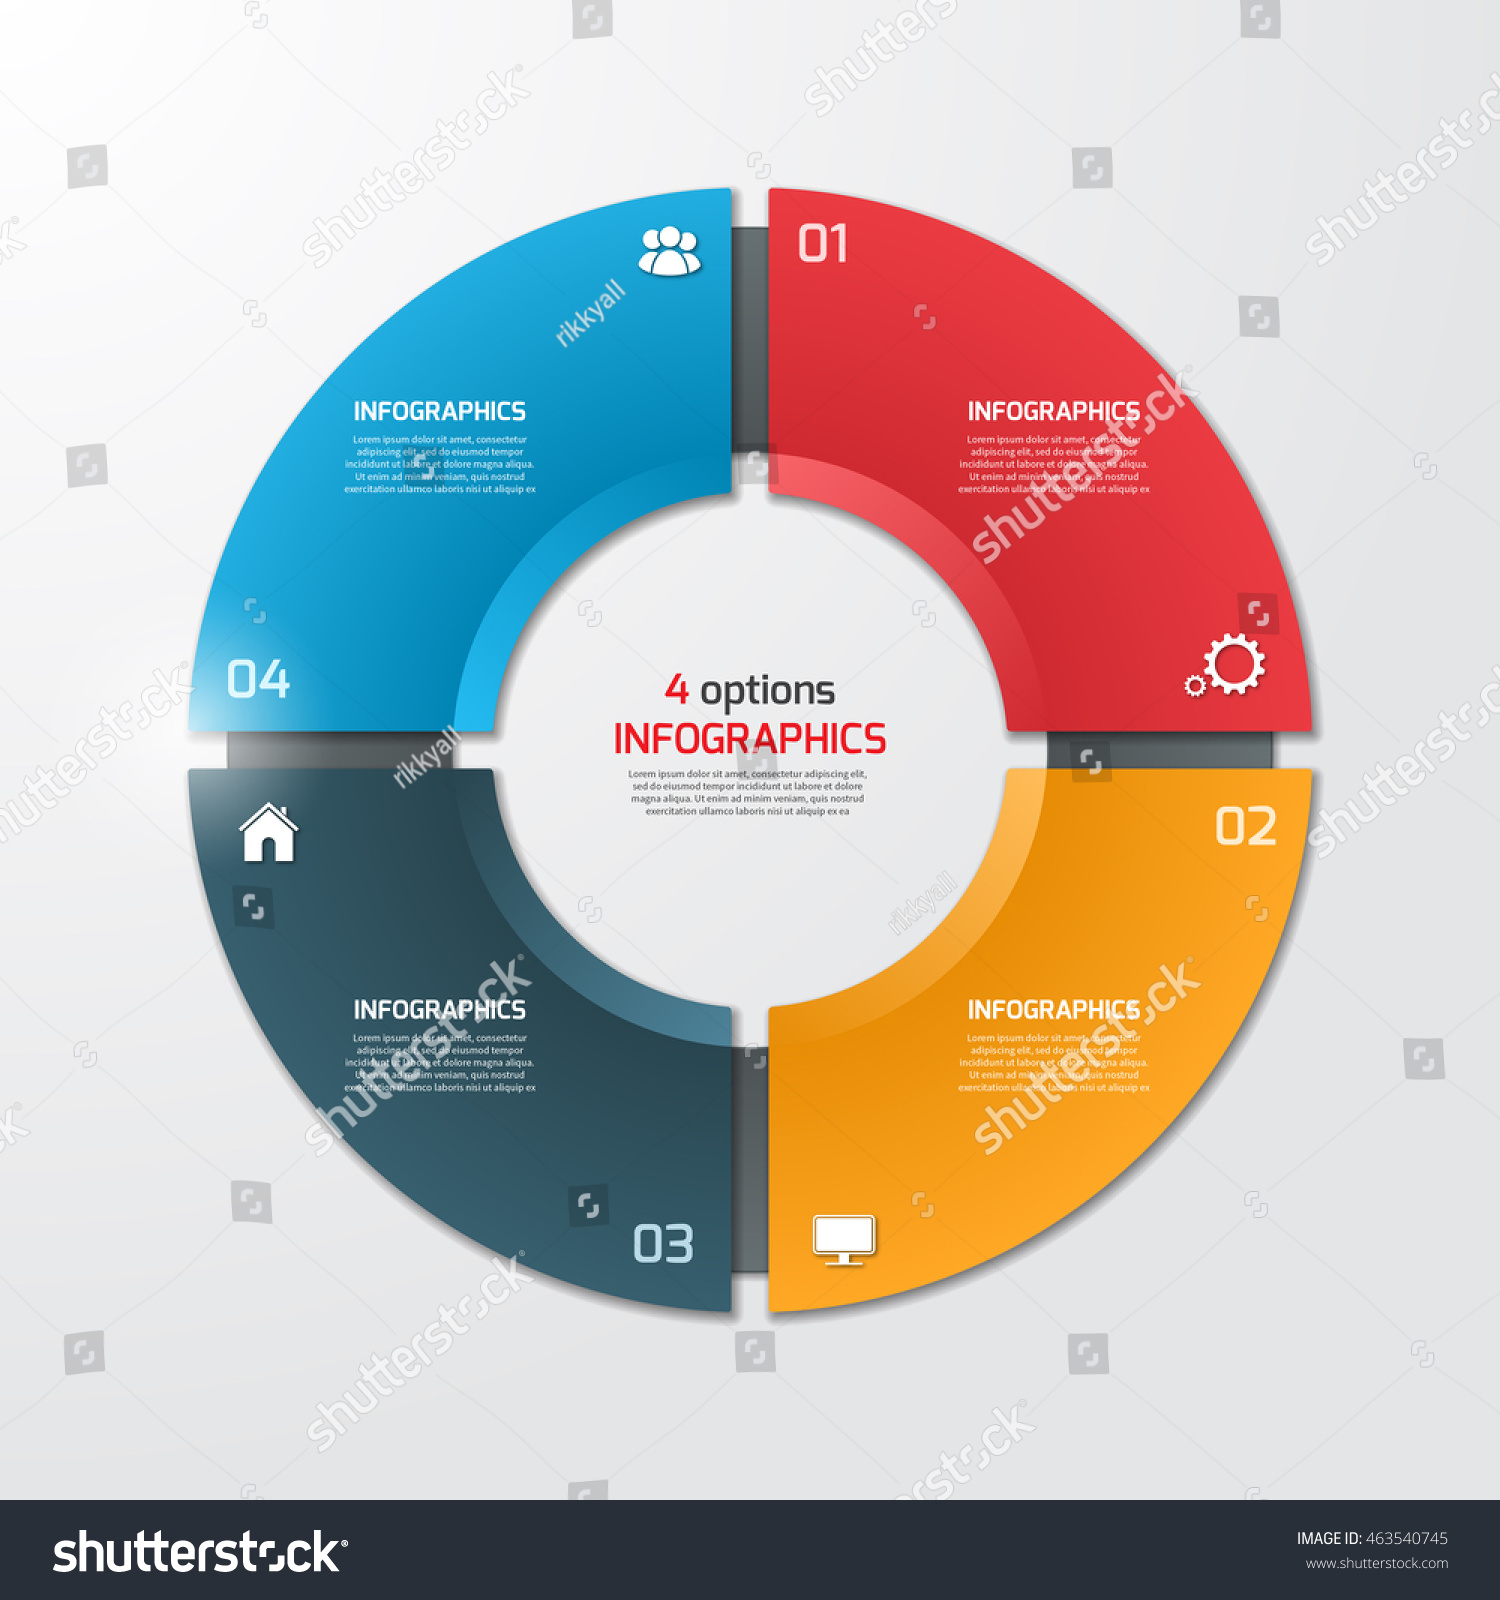 Pie chart circle infographic template 4 stock vector 463540745 pie chart circle infographic template with 4 options business concept vector illustration nvjuhfo Choice Image